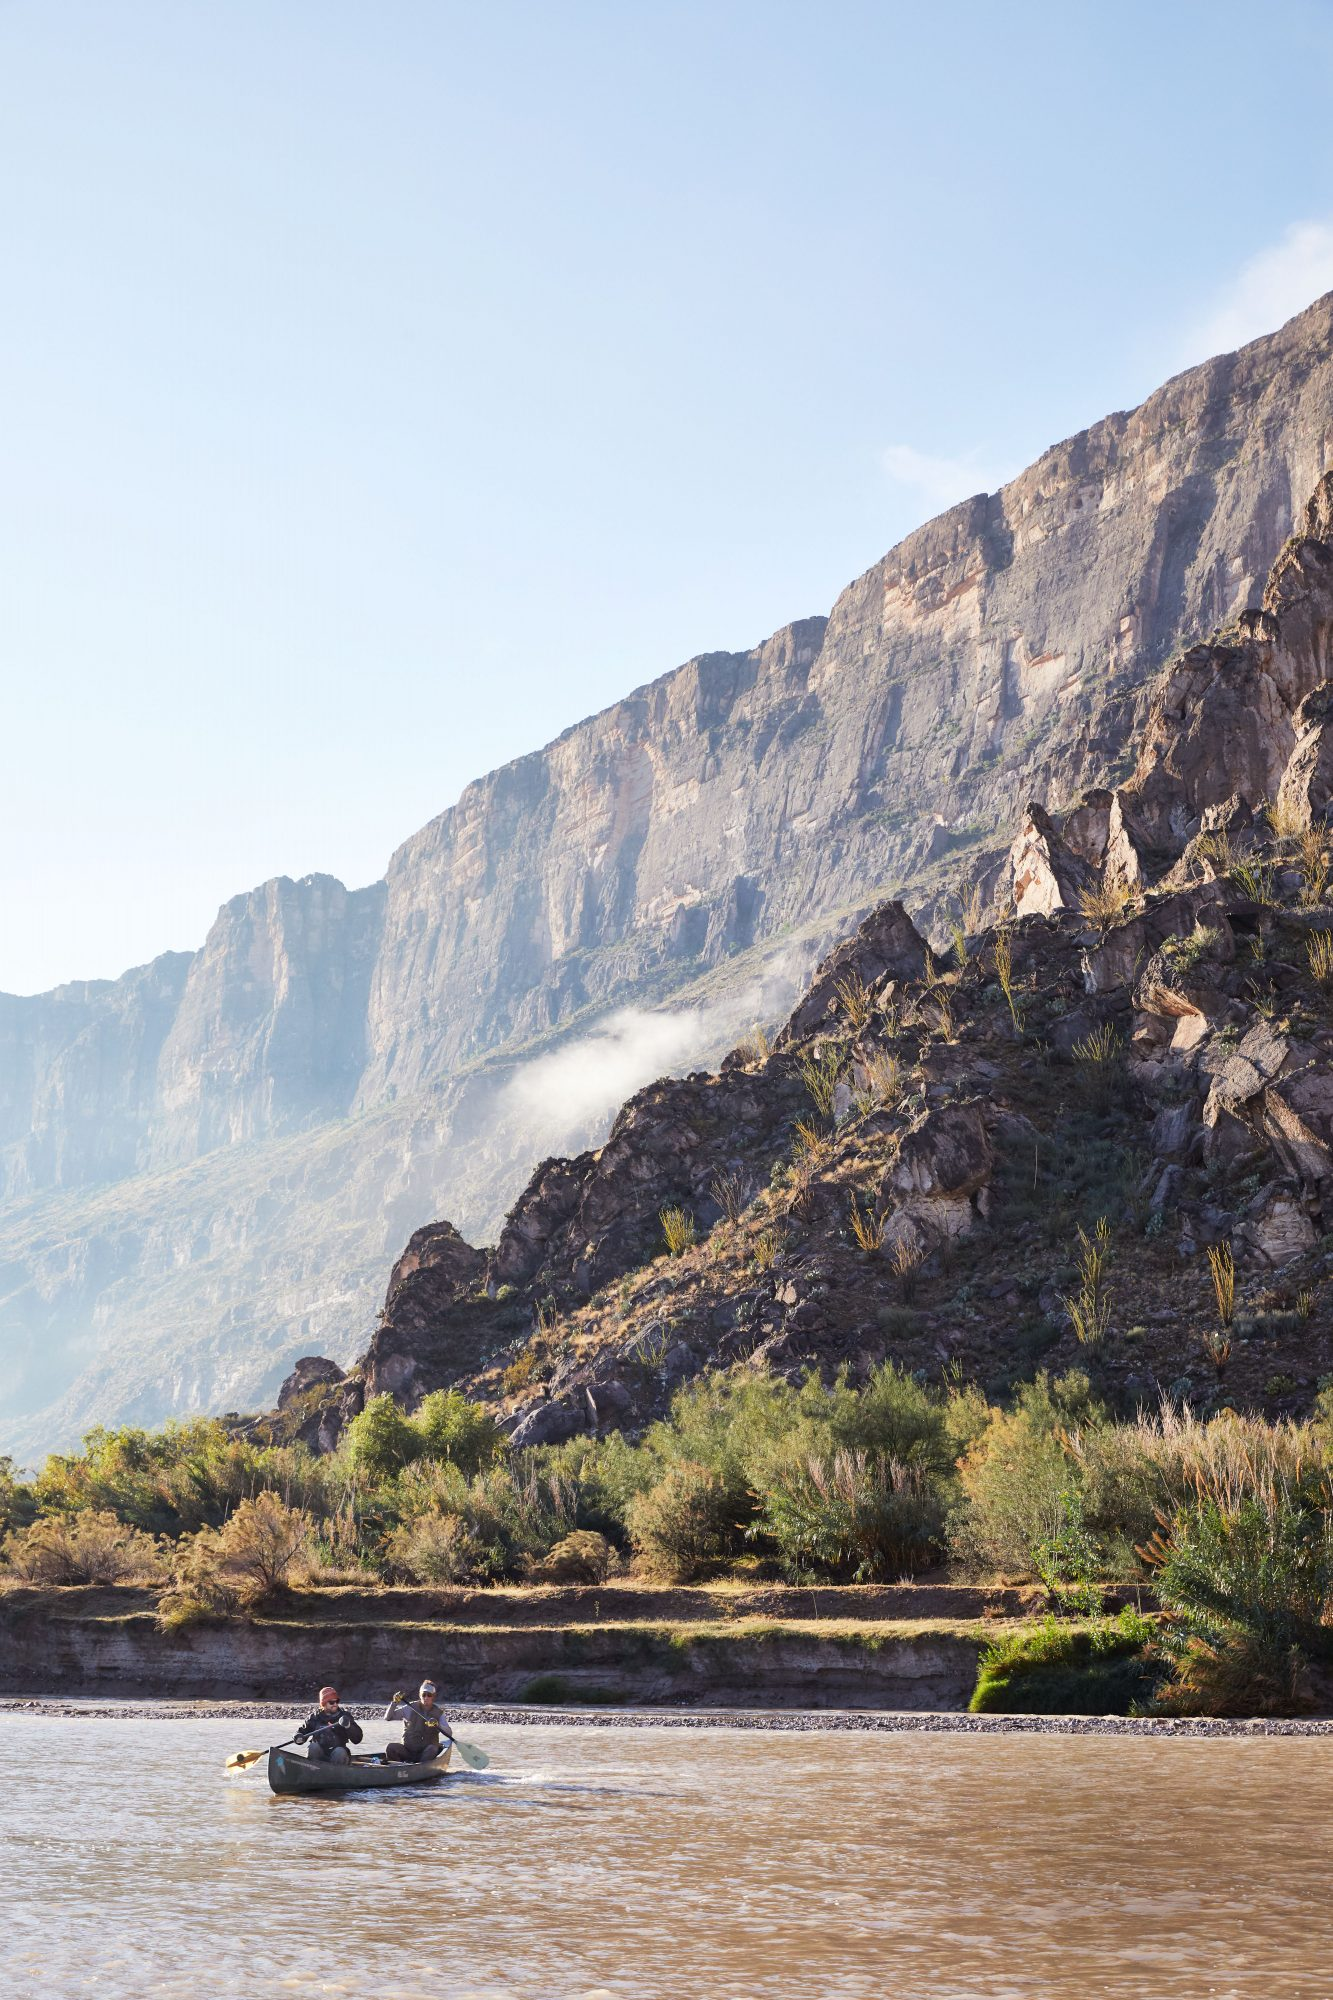 Angell Expeditions leads a river adventure in Santa Elena Canyon.